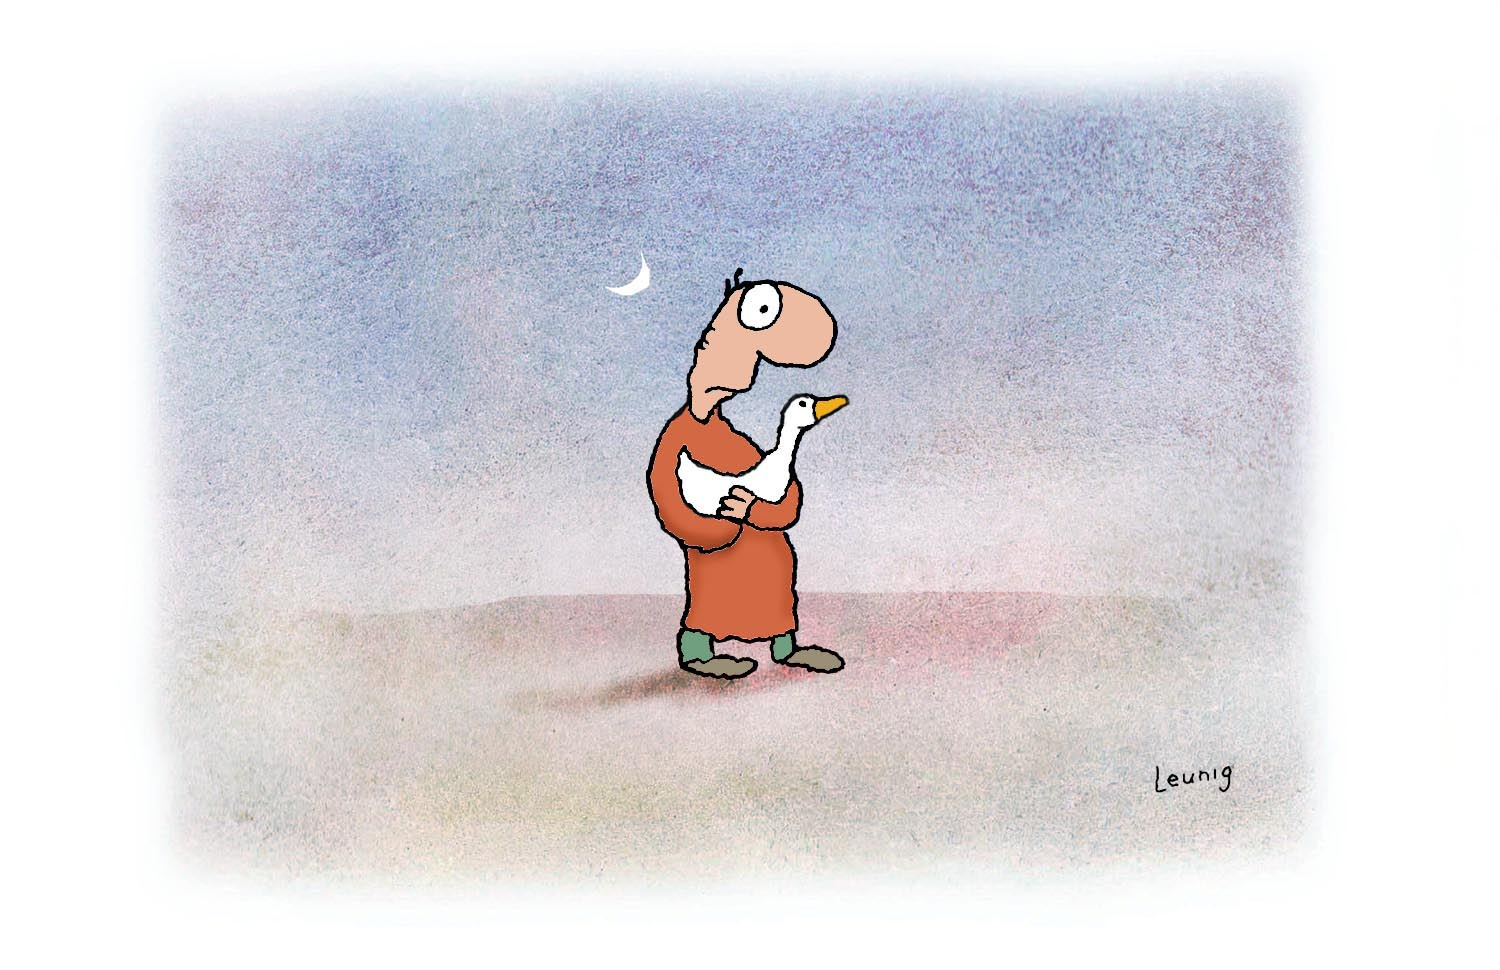 Leunig Self Portrait